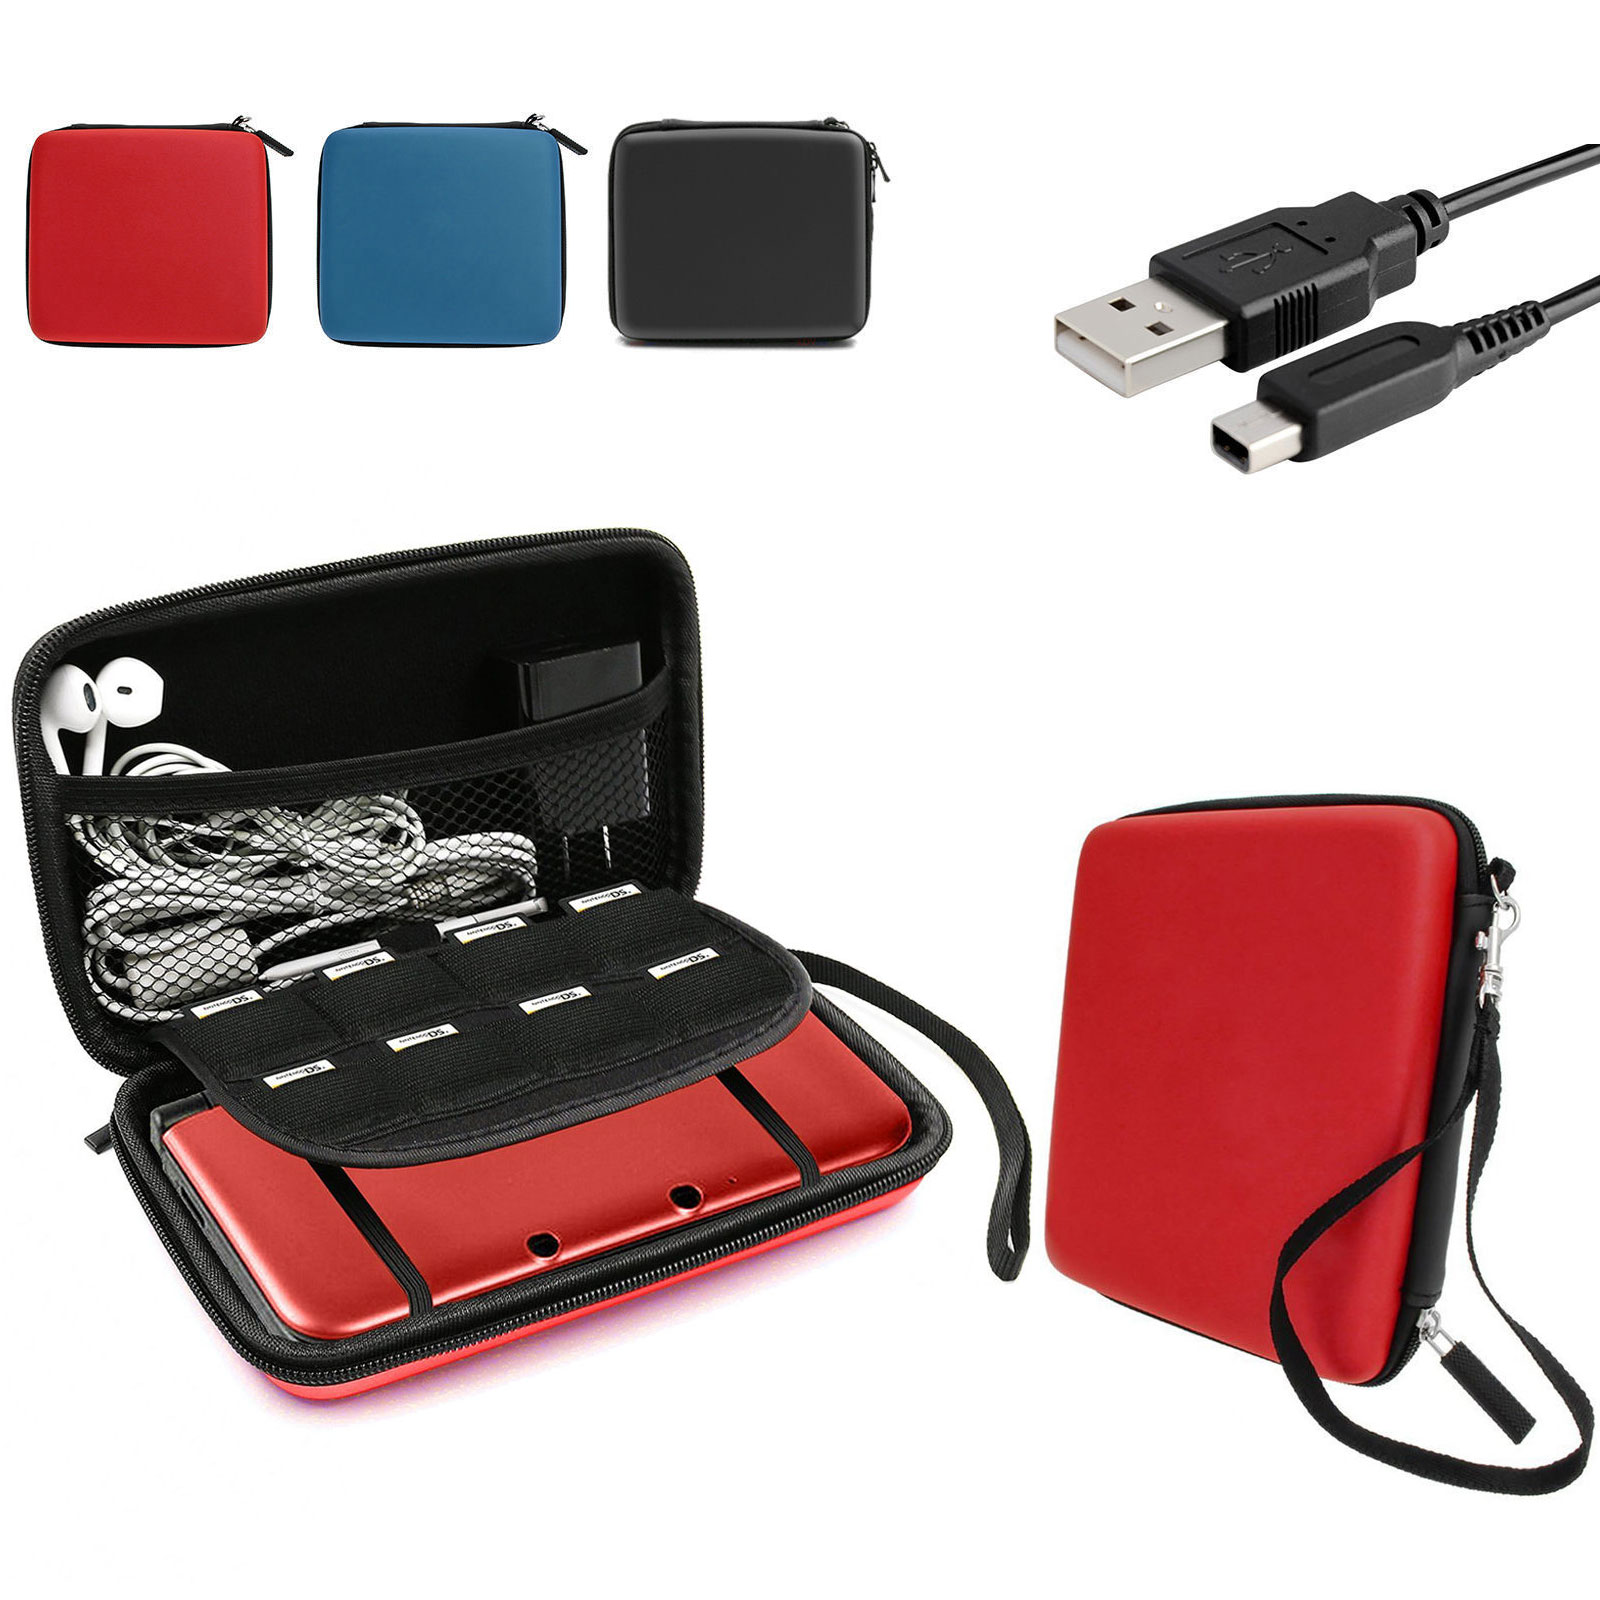 EEEKit-Travel-Carrying-Case-Storage-Charging-Cable-USB-Adapter-for-Nintendo-2DS